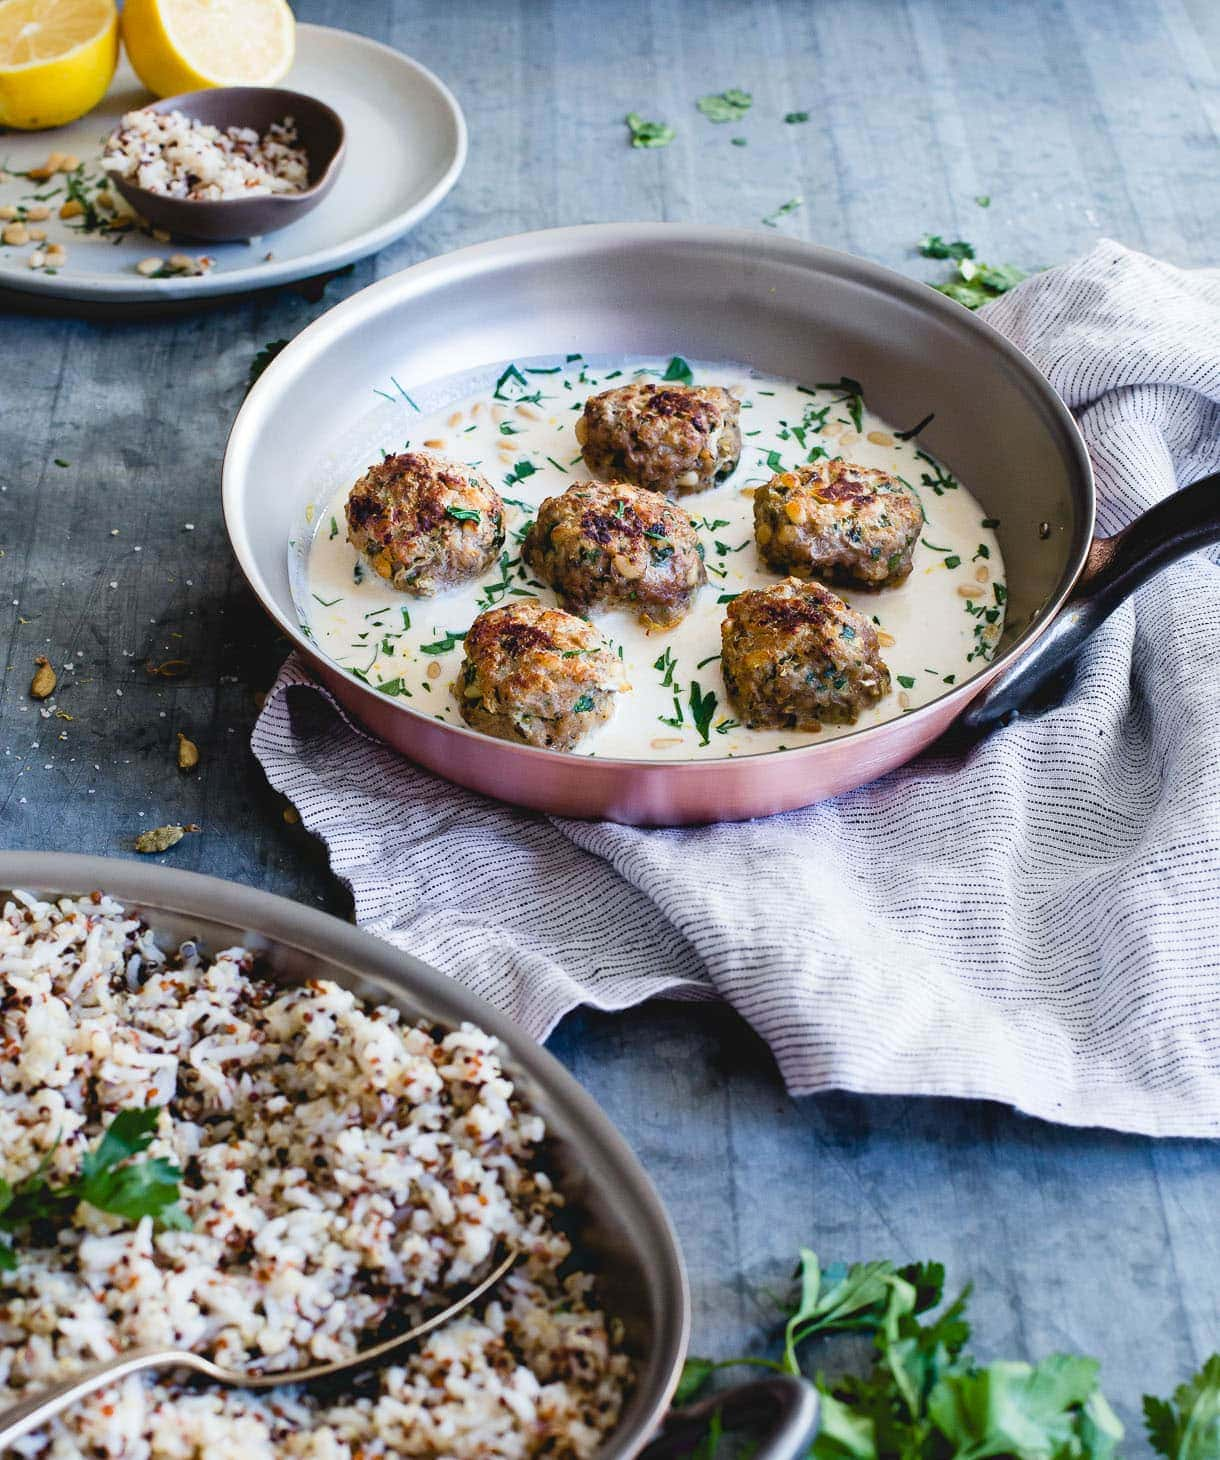 Lemon Cardamom Meatballs with Pine Nuts and Garlic Tahini Sauce